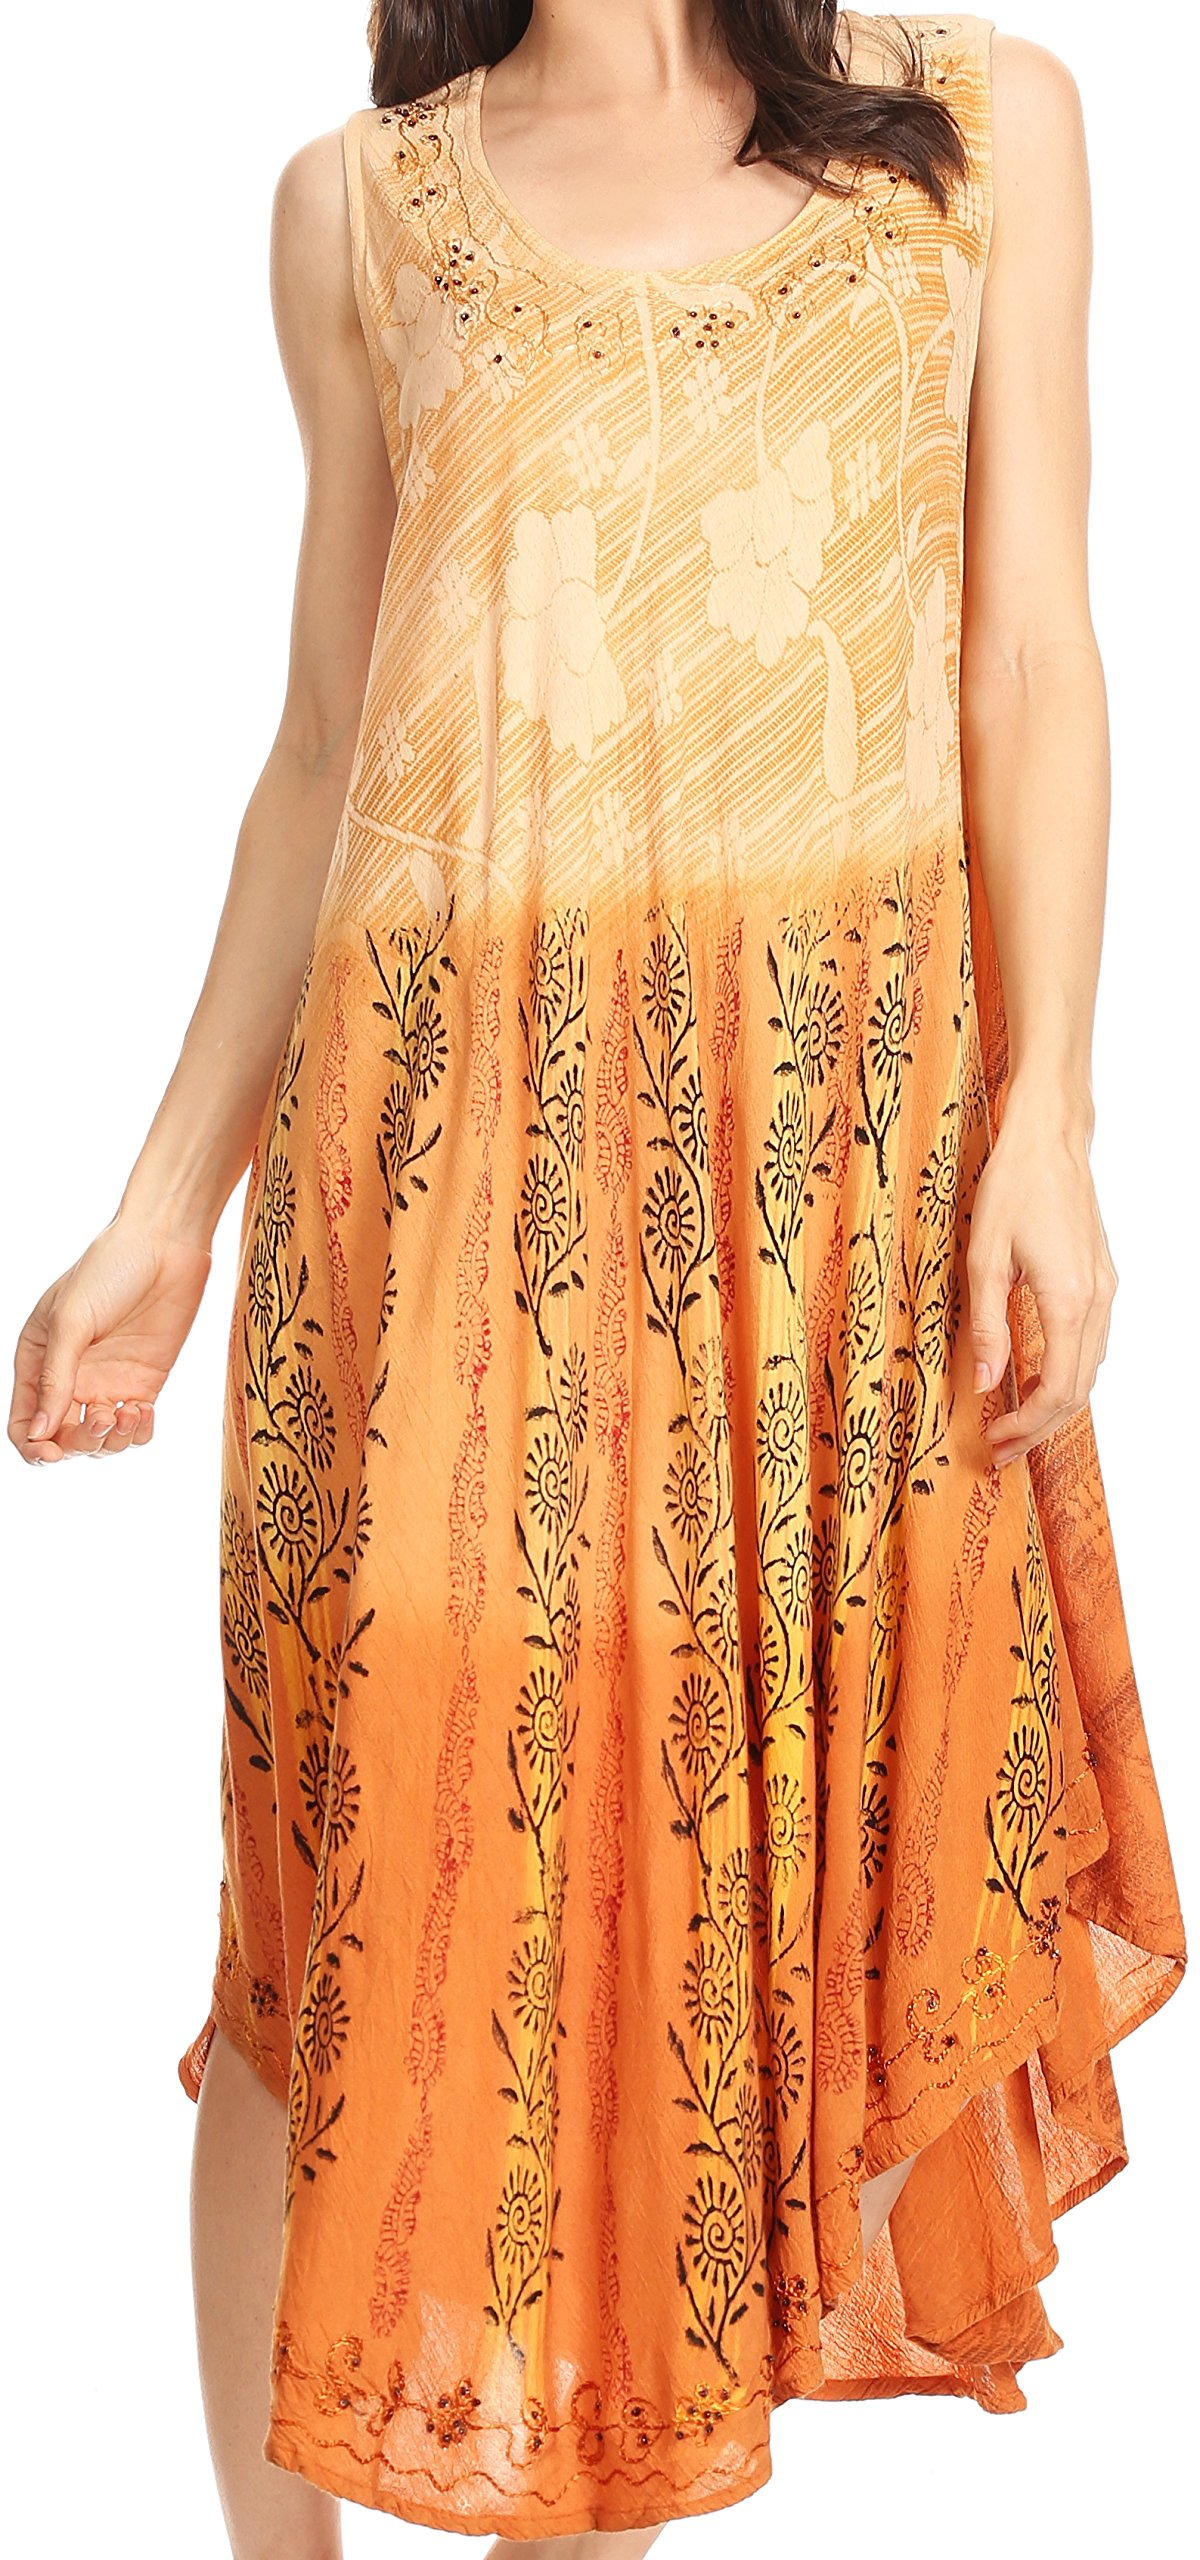 Sakkas 86458 - Alicia Ombre Vine Print Batik Dress/Cover up with Sequins and Embroidery - Light Brown - OS